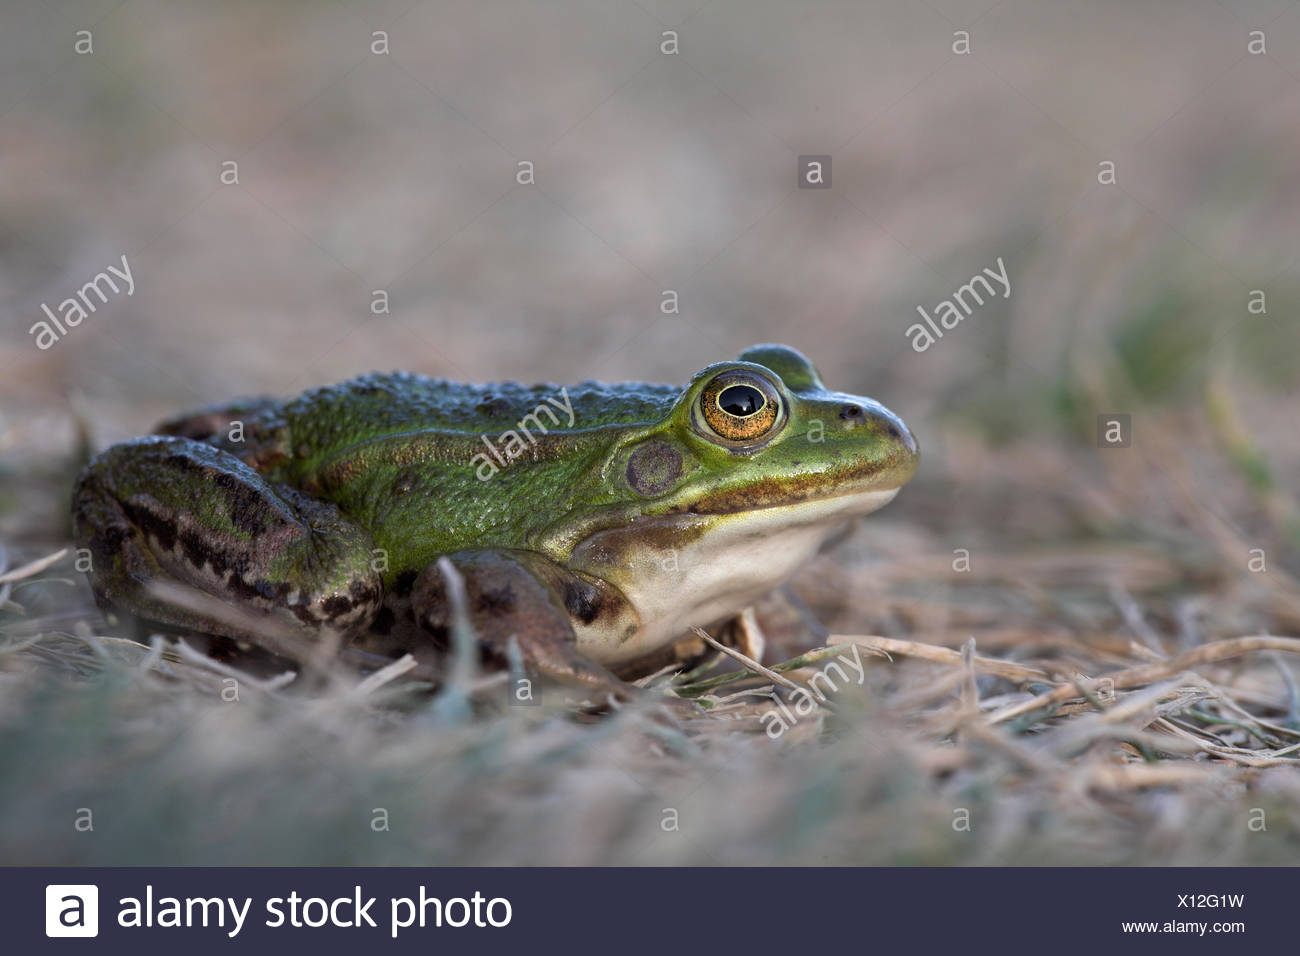 pool frog on golf course - Stock Image